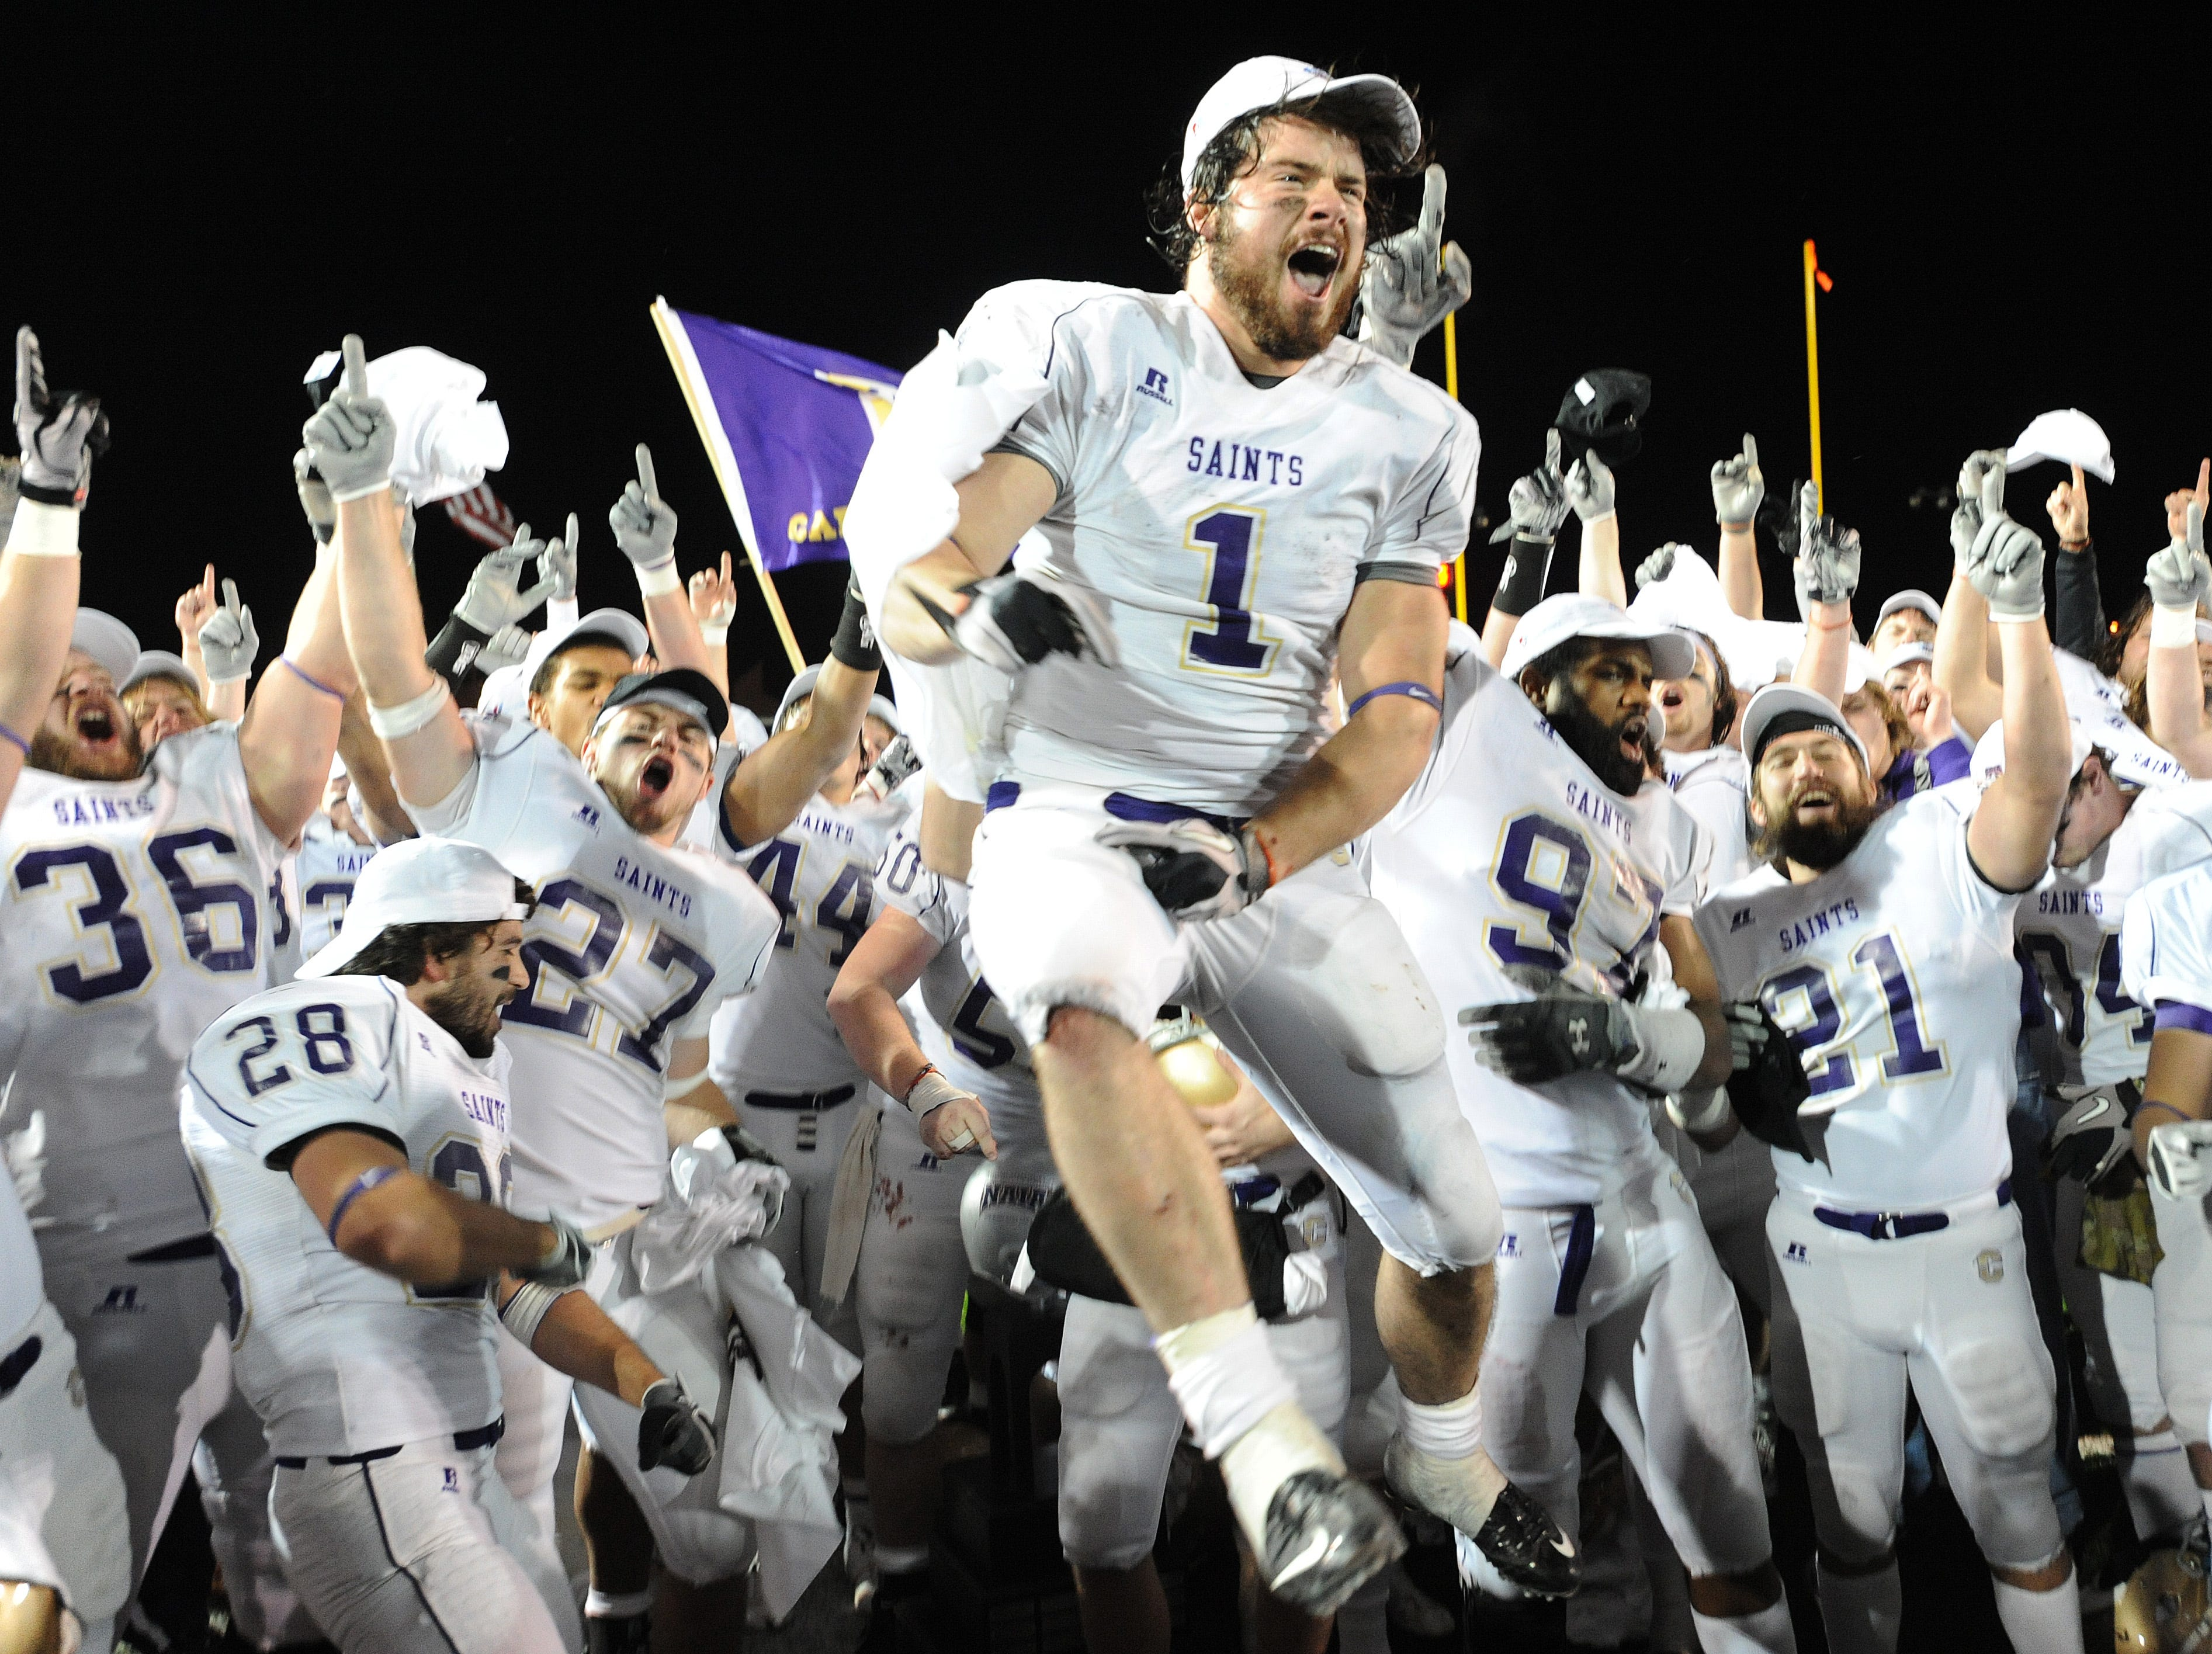 Carroll College running back John Camino (1) and other members of the team celebrate defeating Sioux Falls in the NAIA college football championship game at Brannon Field on Saturday, Dec. 18, 2010, in Rome, Ga. Carroll College defeated Sioux Falls 10-7.